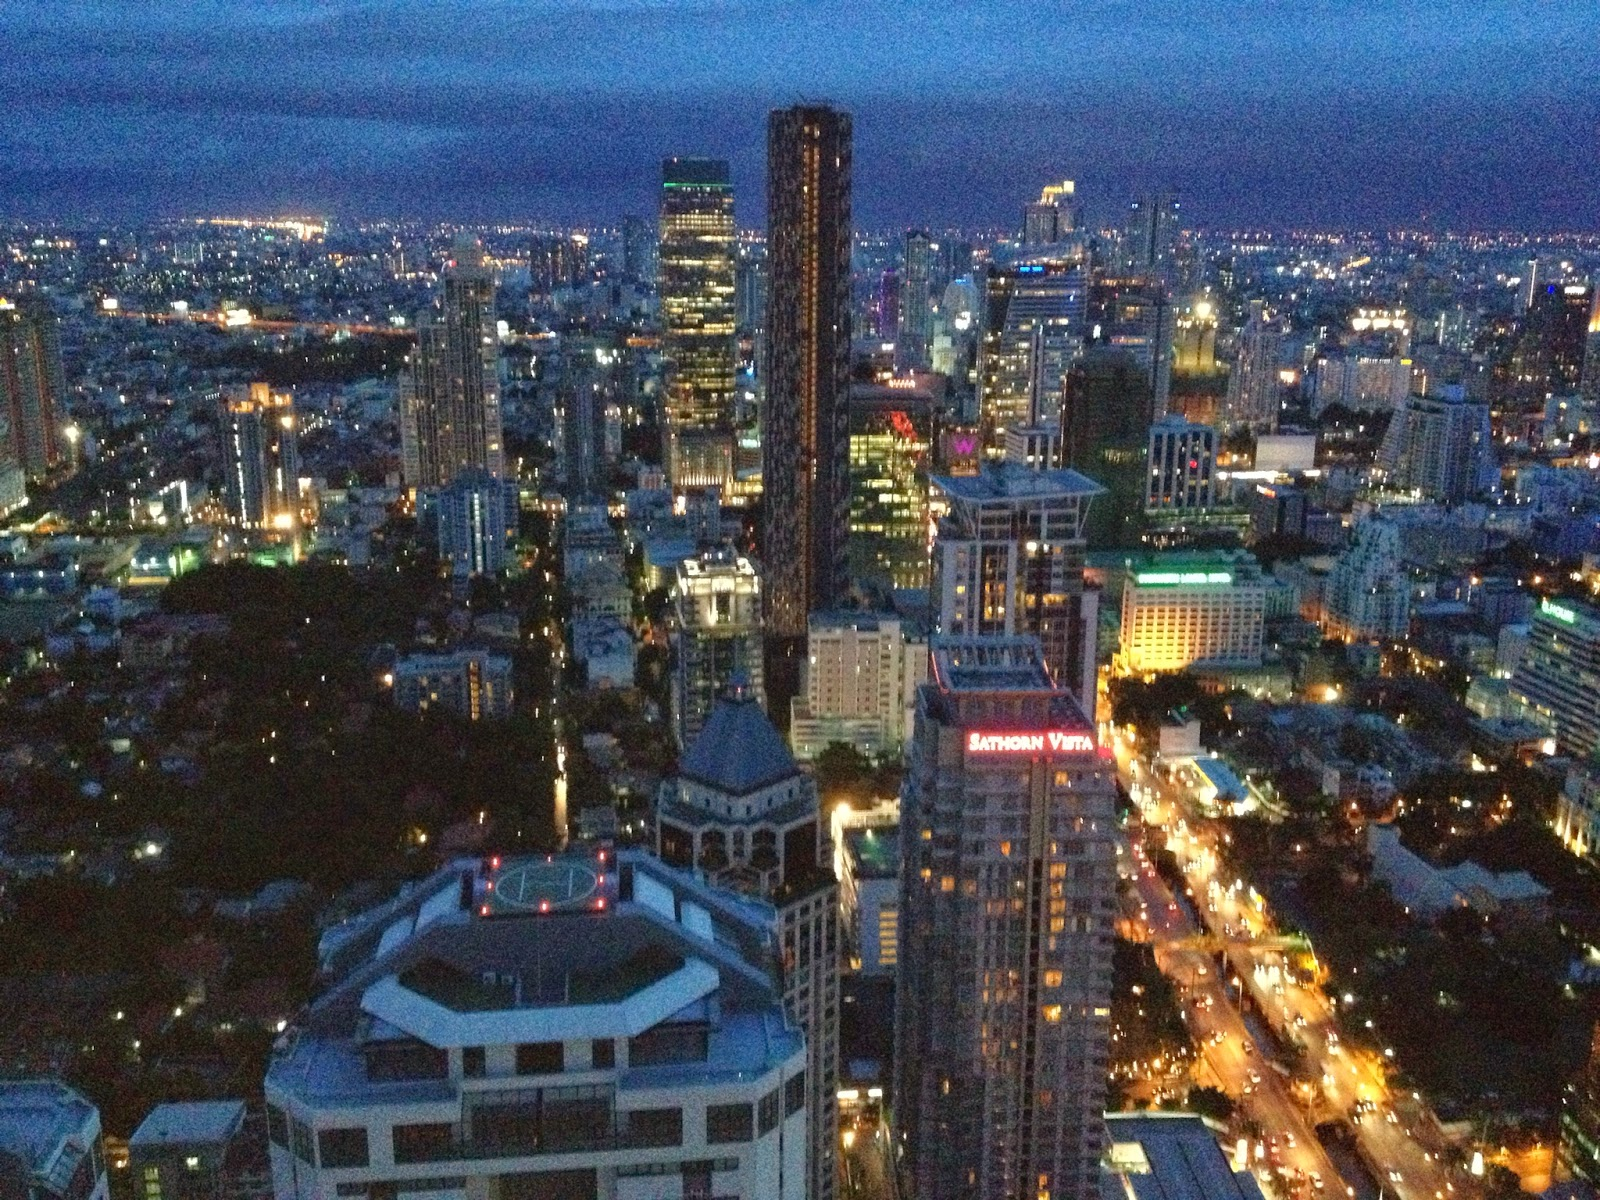 Bangkok - Night time view from the Banyan Tree Hotel rooftop